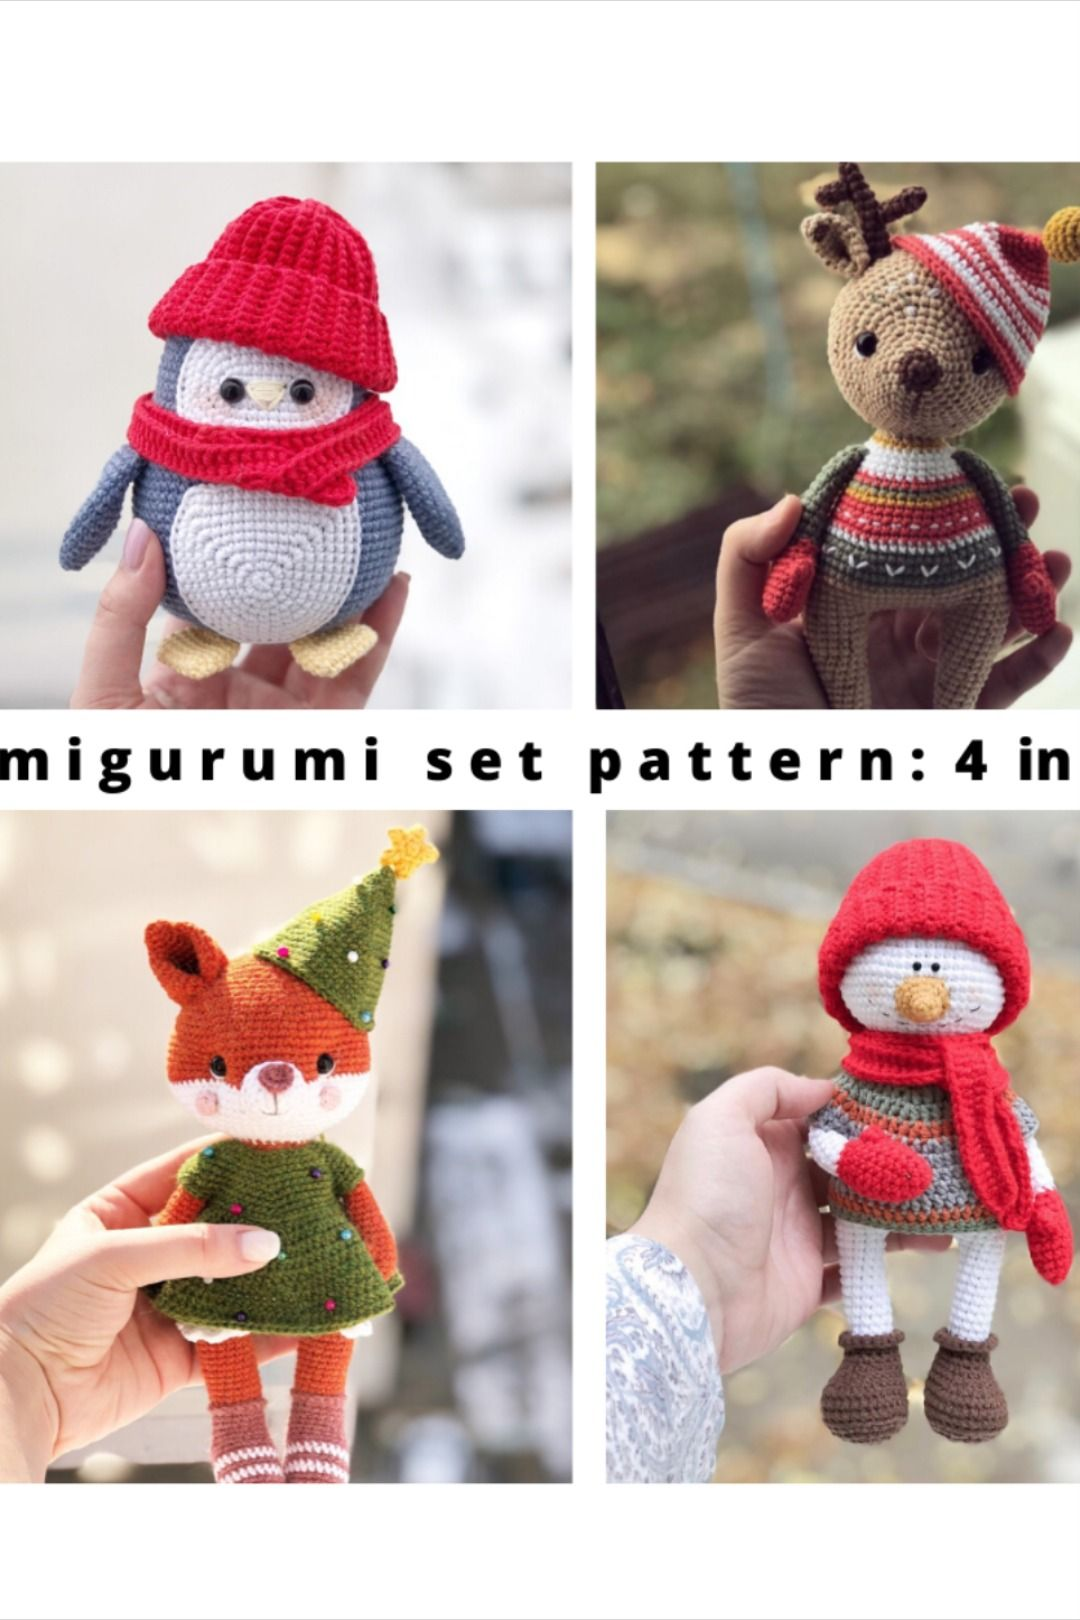 How to Crochet: Amigurumi Basics : 6 Steps (with Pictures) - Instructables | 1620x1080